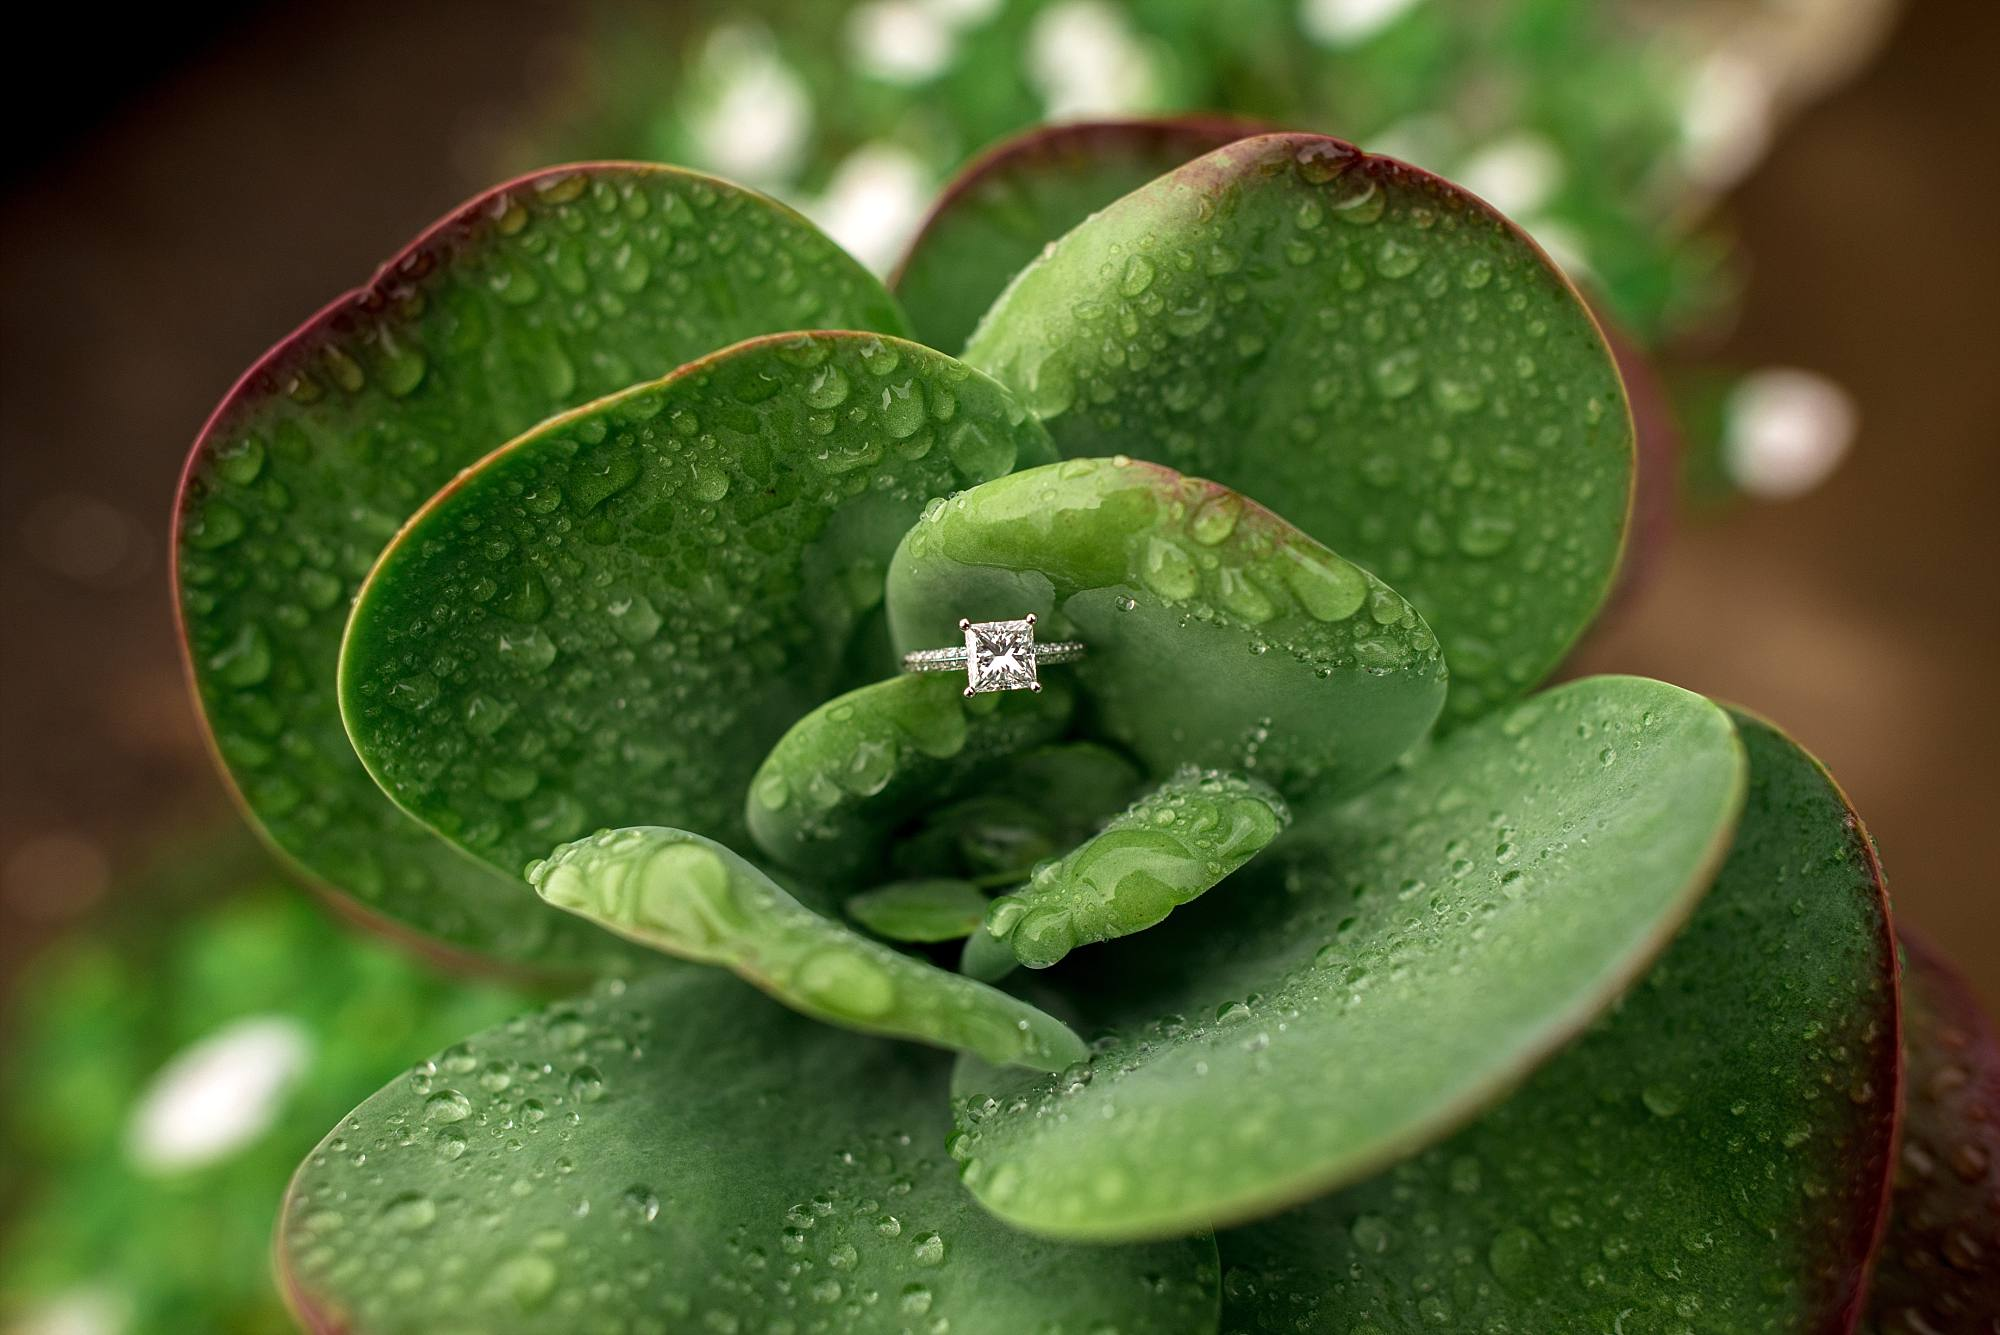 princess cut diamond engagmenet ring in dew covered greenery